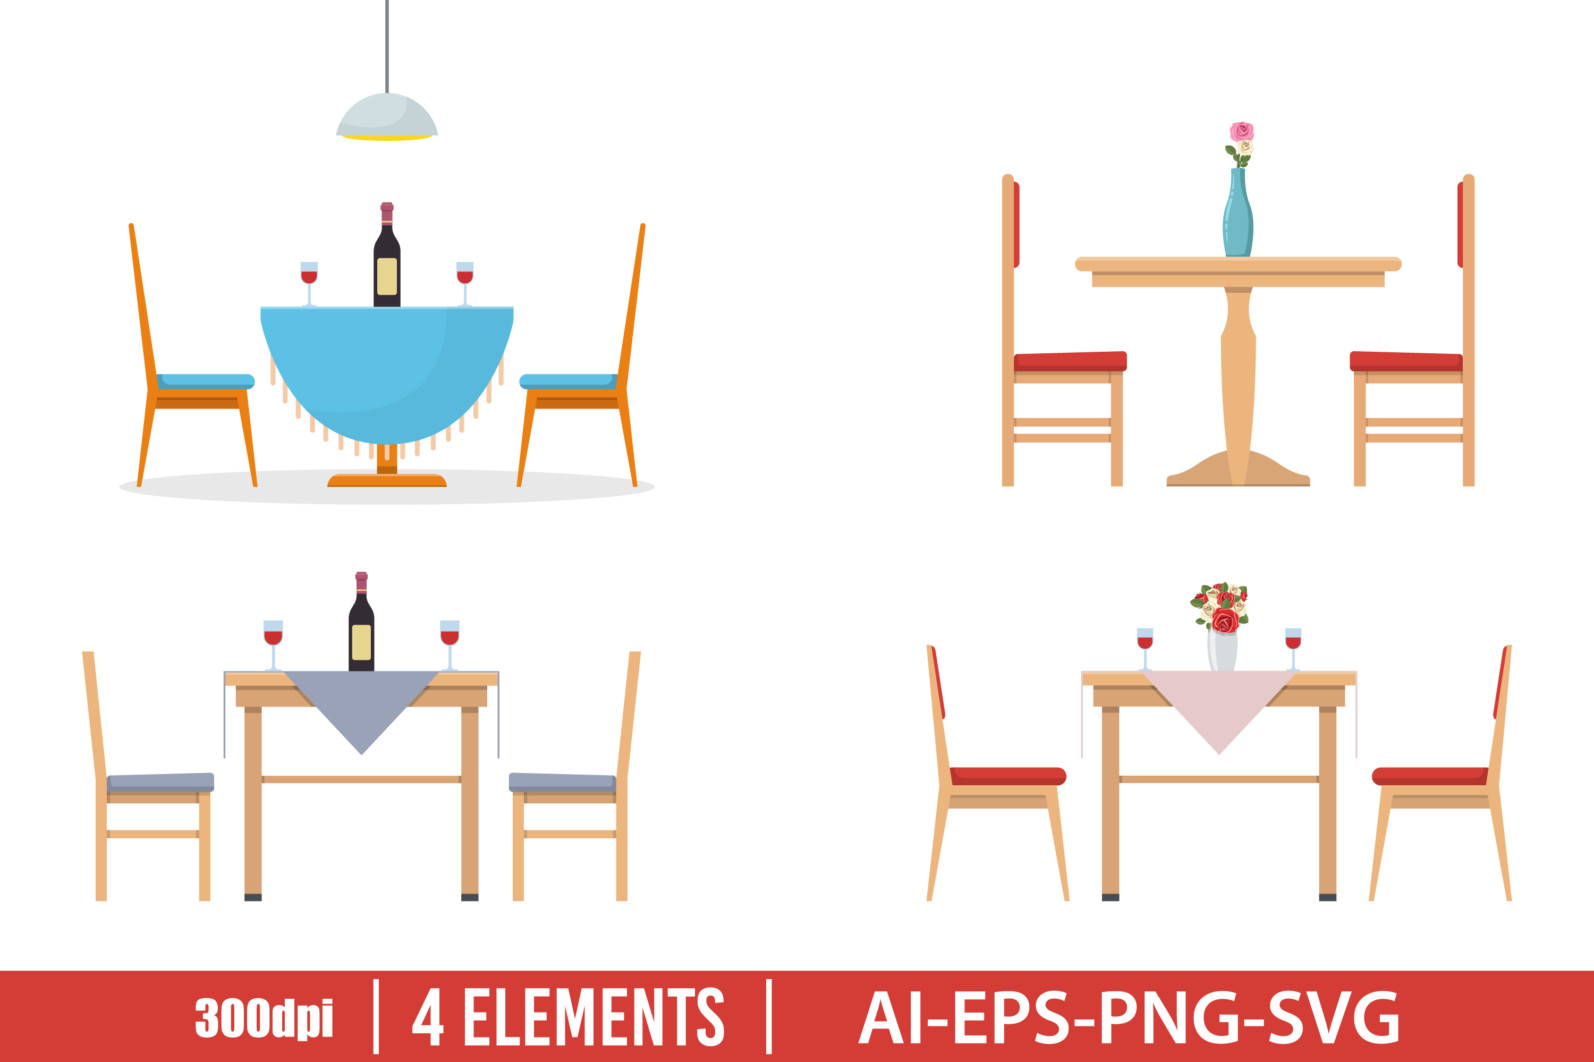 Dining table clipart vector design illustration. Dining table set. Vector Clipart Print - DINING TABLE scaled -